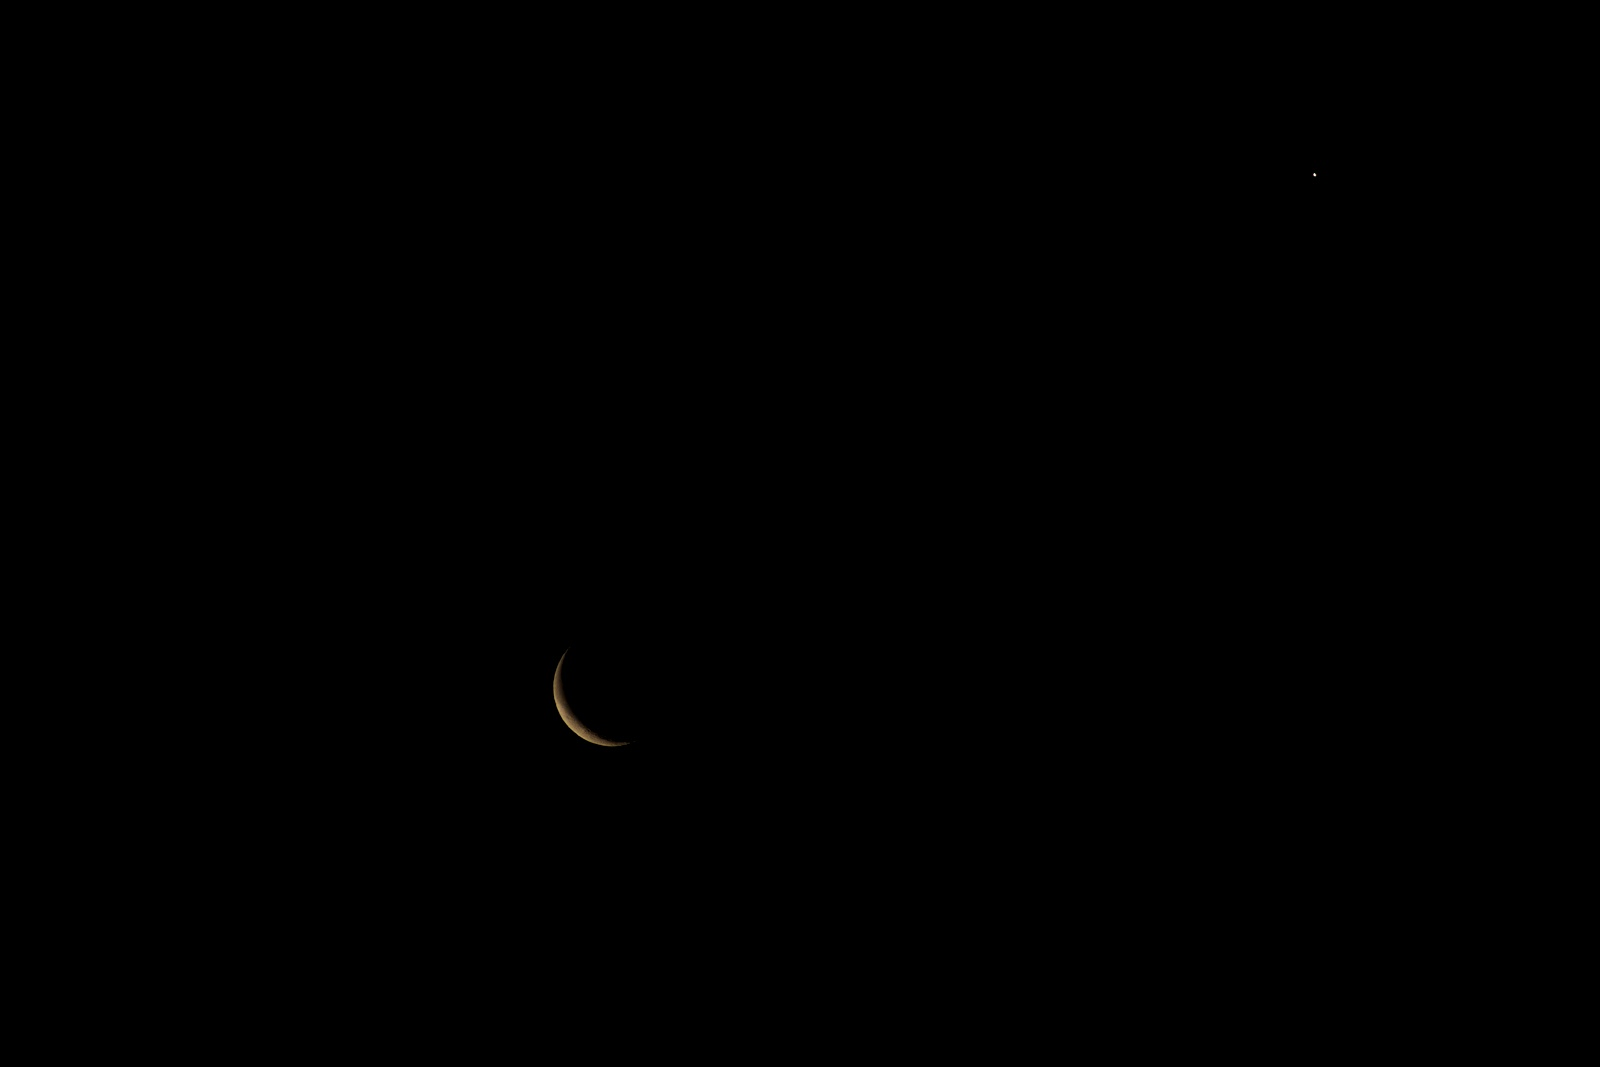 crescent moon conjunction with venus